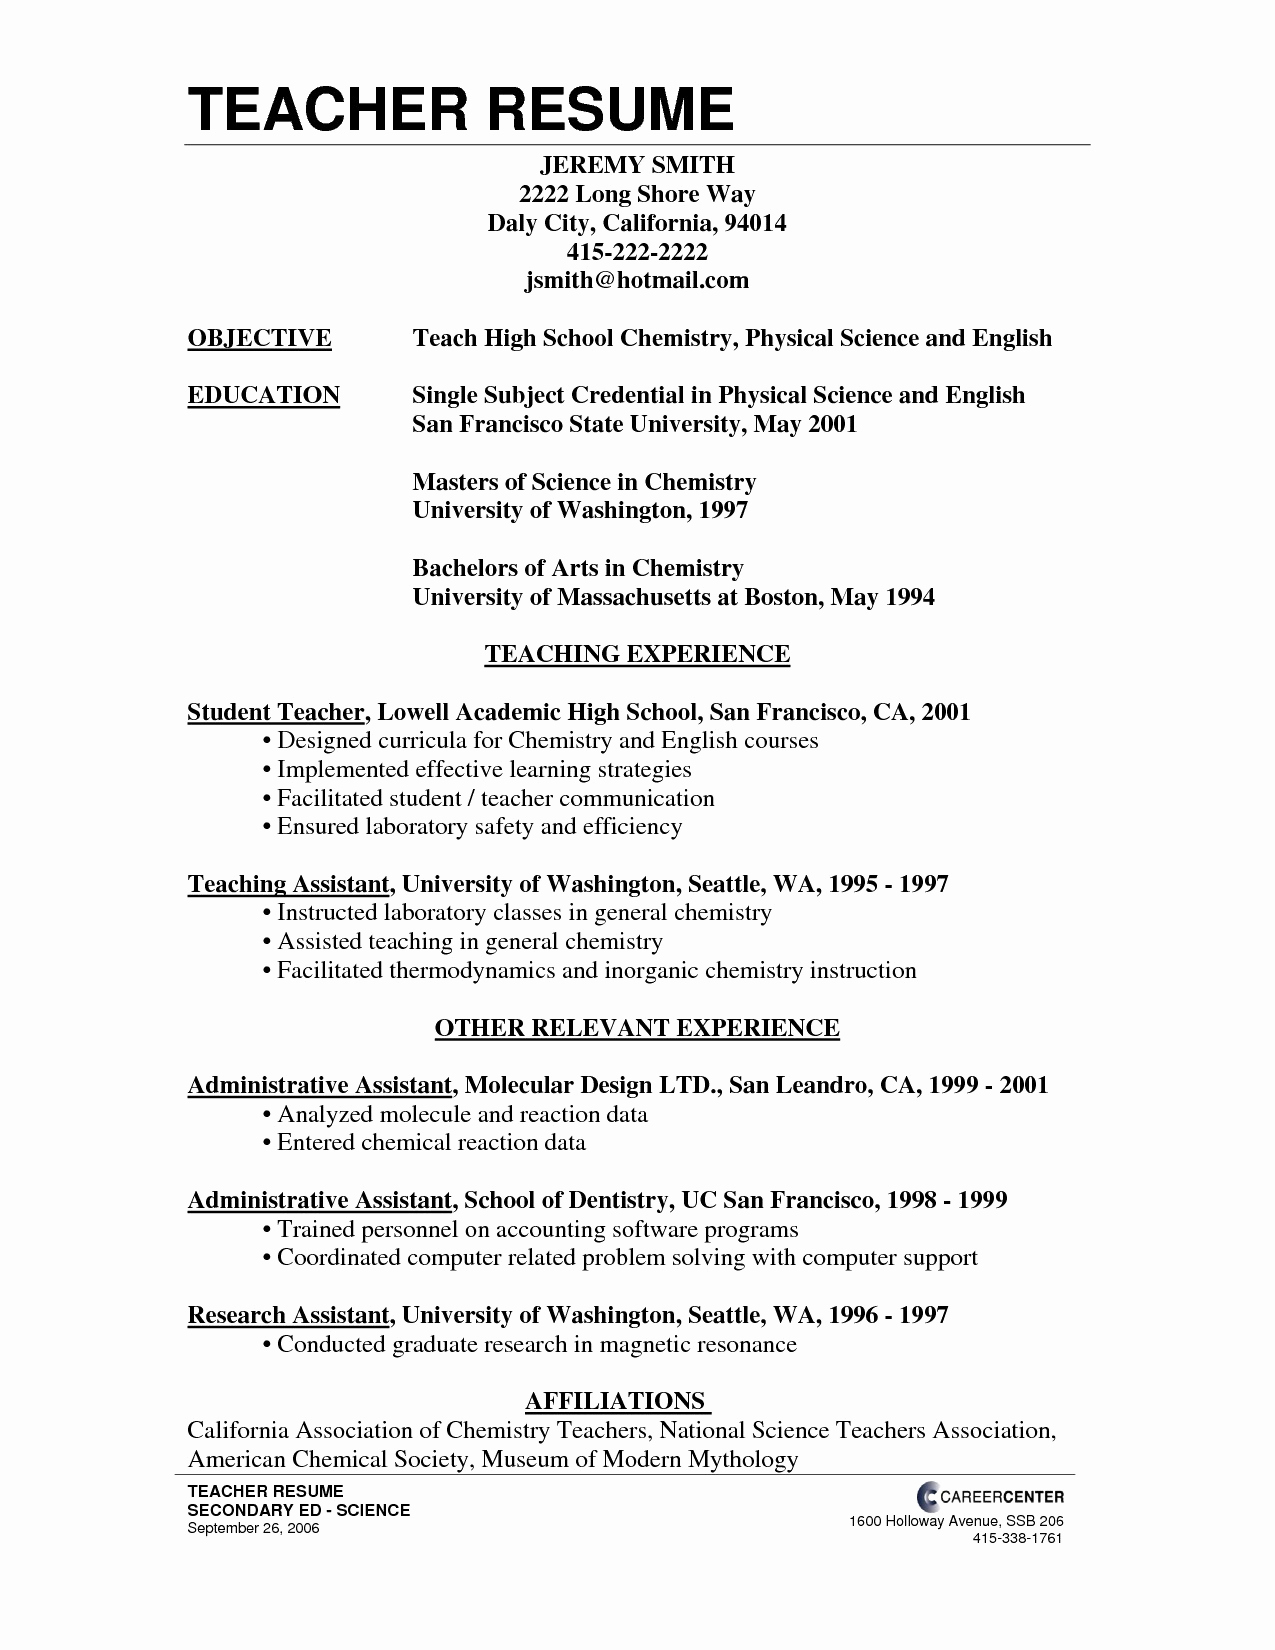 Modern Resume And Cover Letter Template Examples Letter Templates